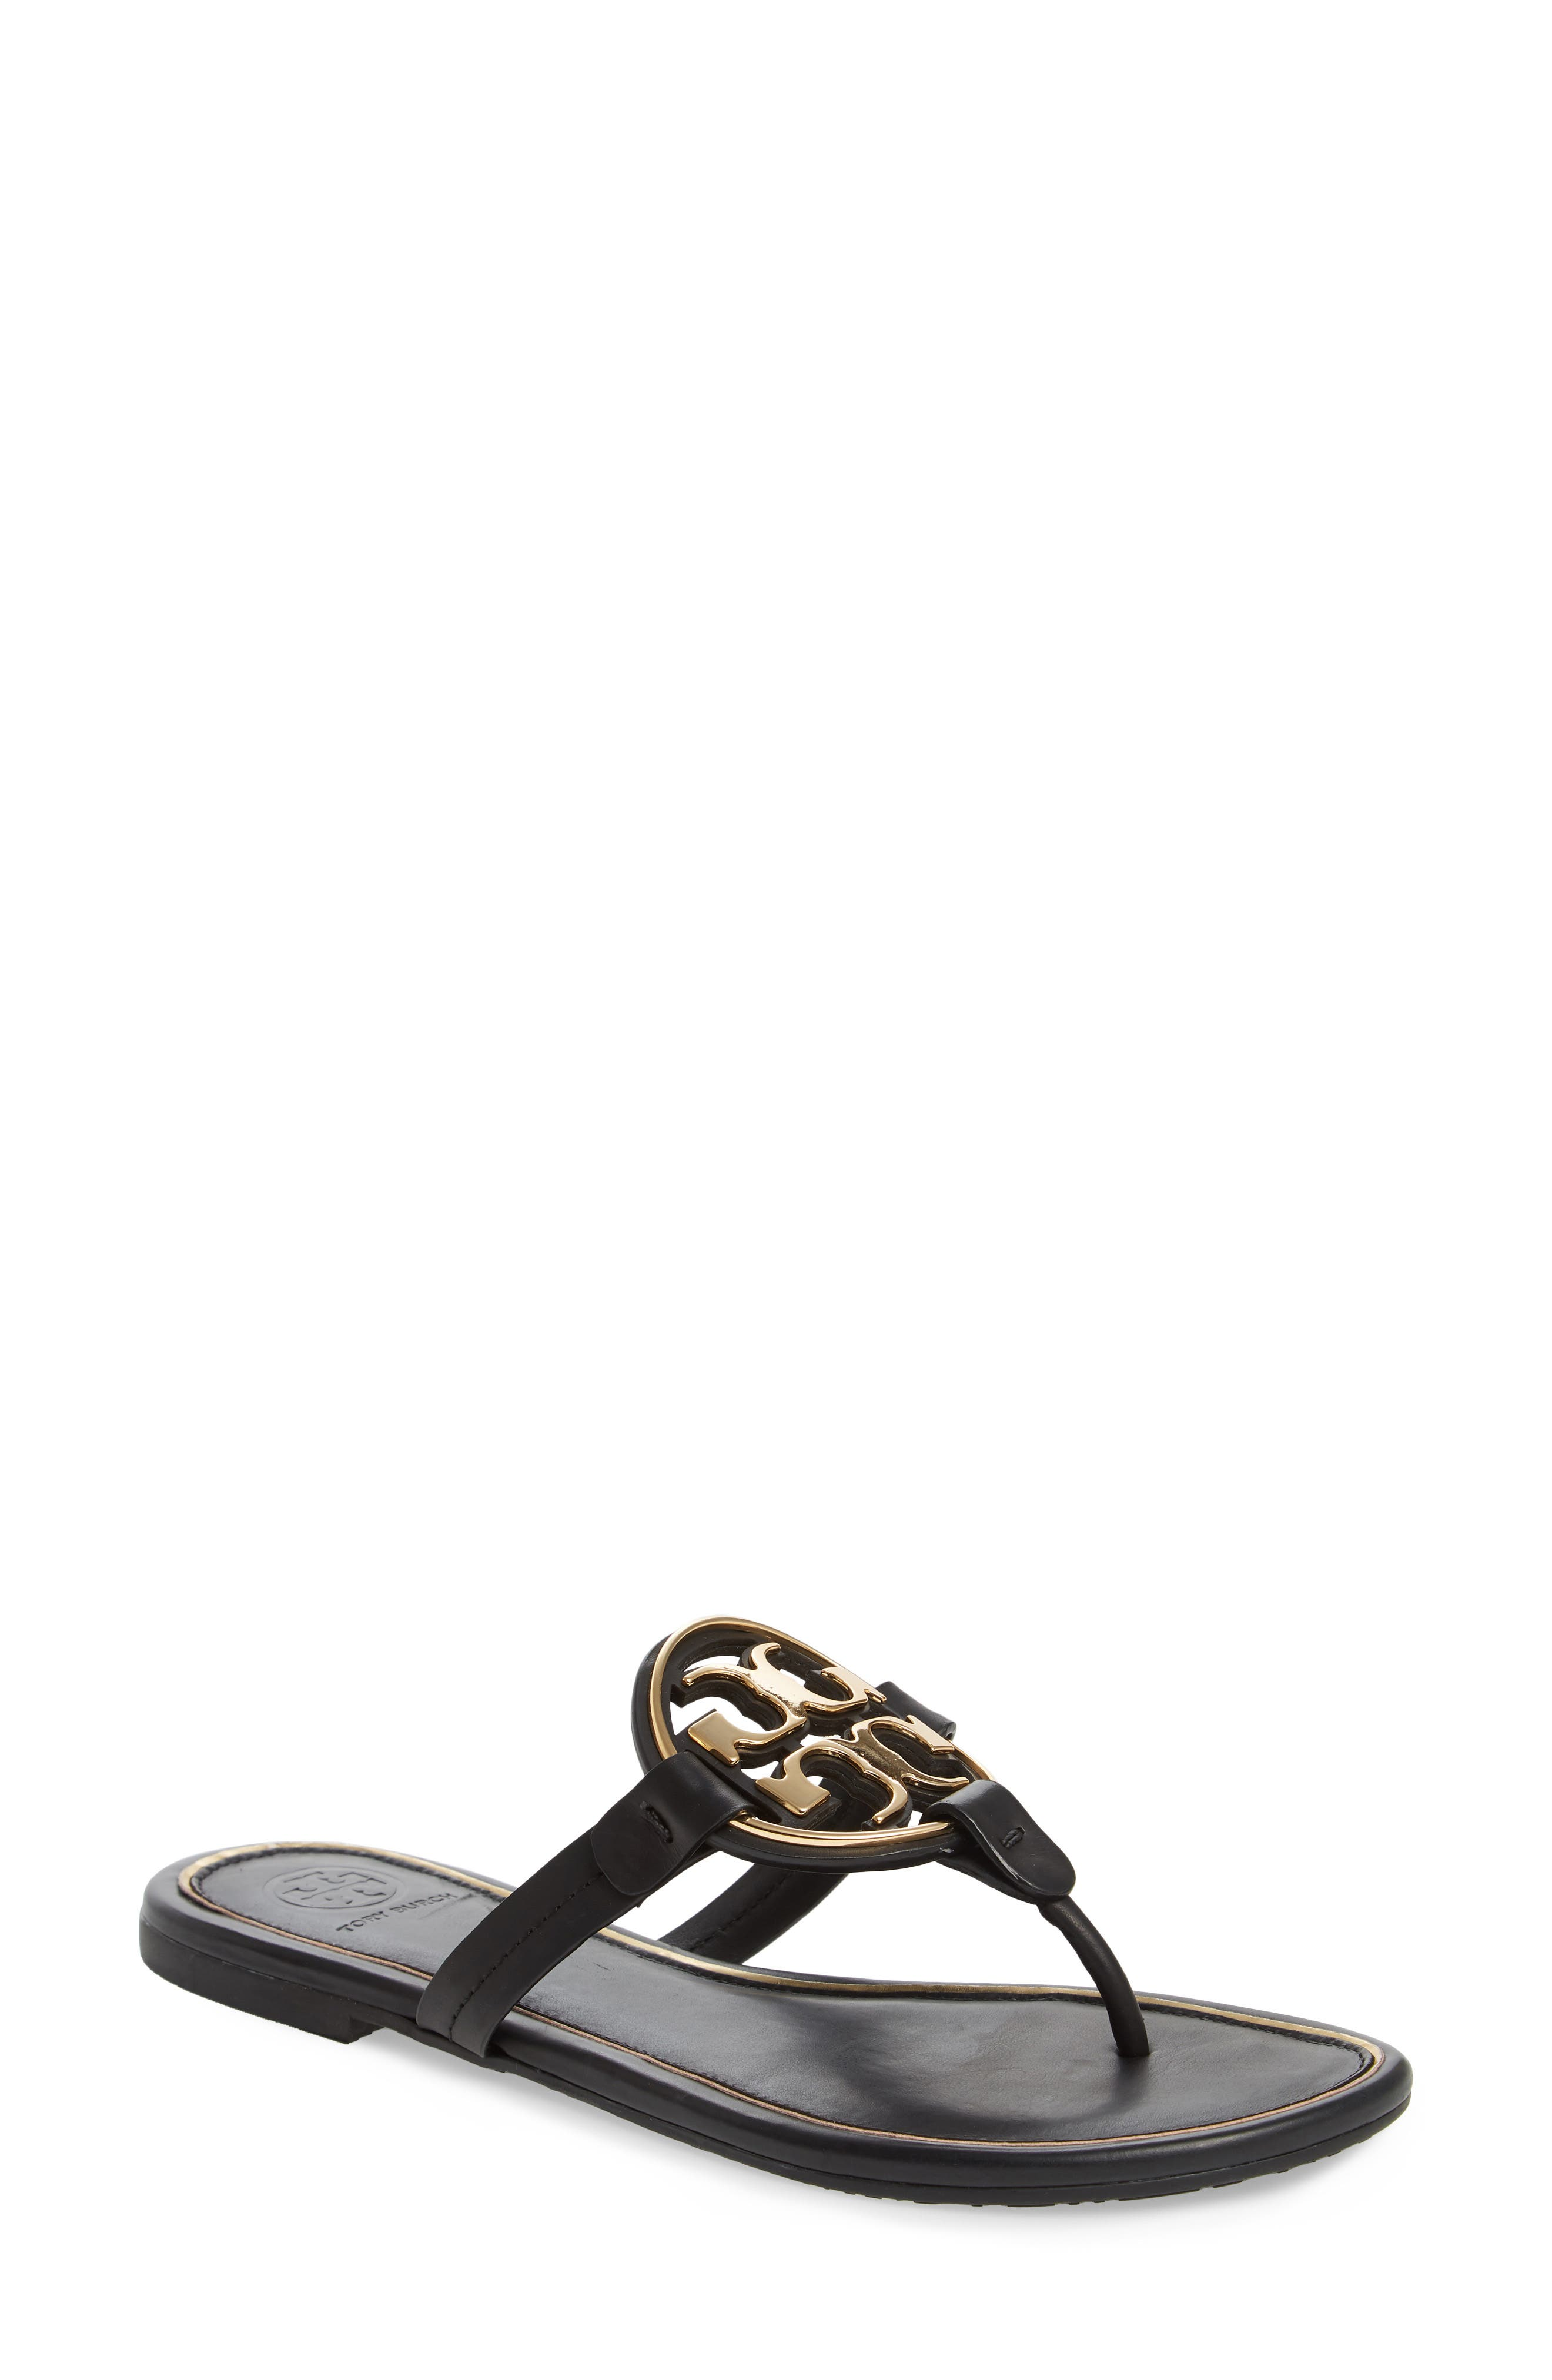 TORY BURCH,                             Metal Miller Flip Flop,                             Main thumbnail 1, color,                             PERFECT BLACK/ GOLD